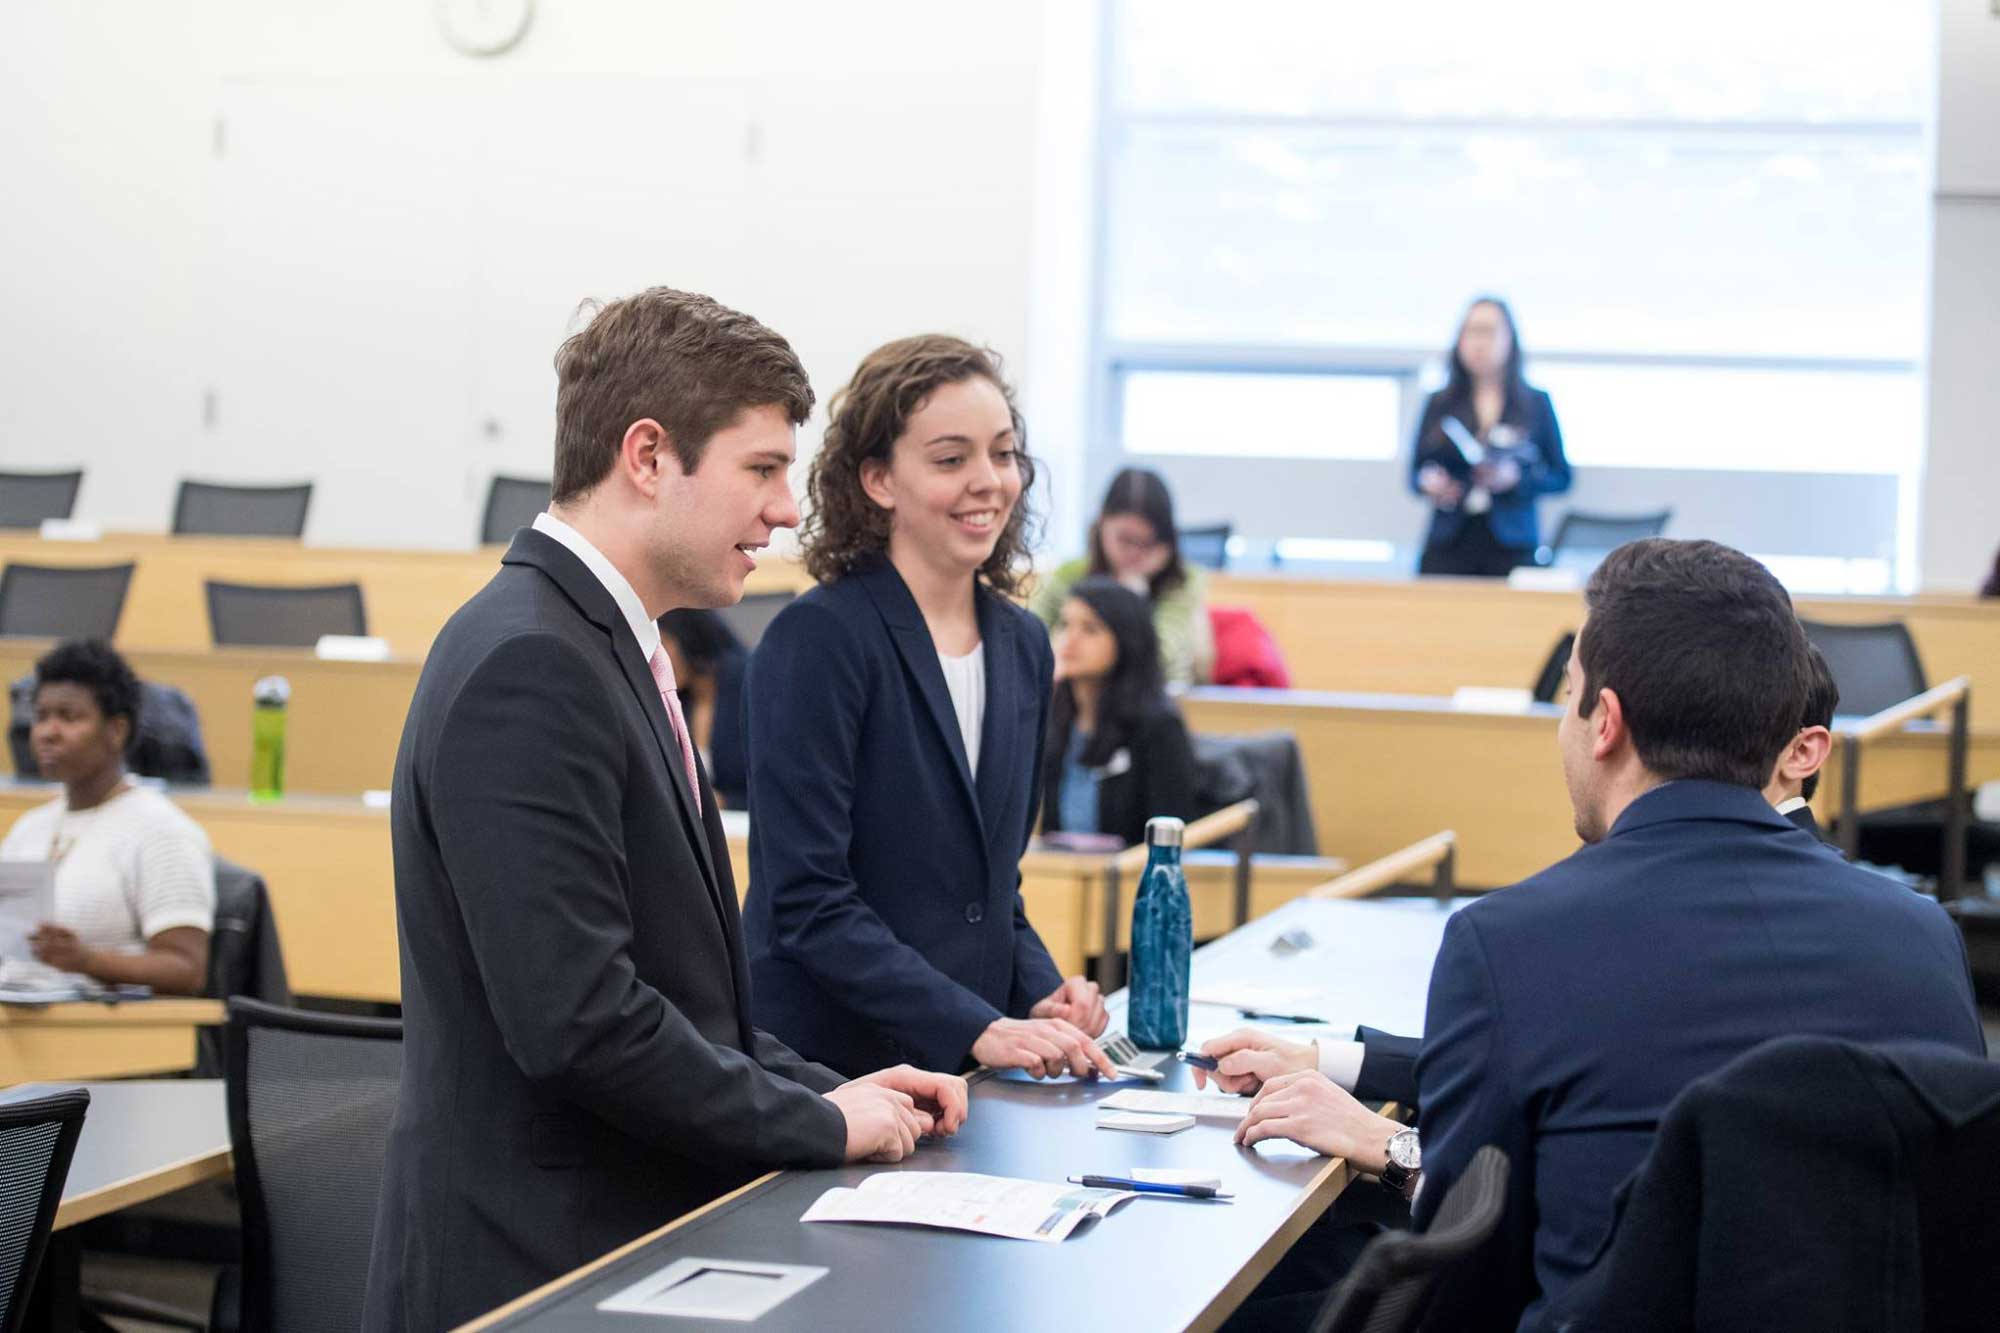 Nick Walsh, left, and Brie Riley, both juniors at the University of Michigan Ross School of Business, confer with other members of team Upstart during the Social Impact Challenge competition finals on Feb. 6, 2018. The team won $3,000 for their ideas to spur pop-up businesses in Detroit neighborhoods. Image credit: Michigan Photography